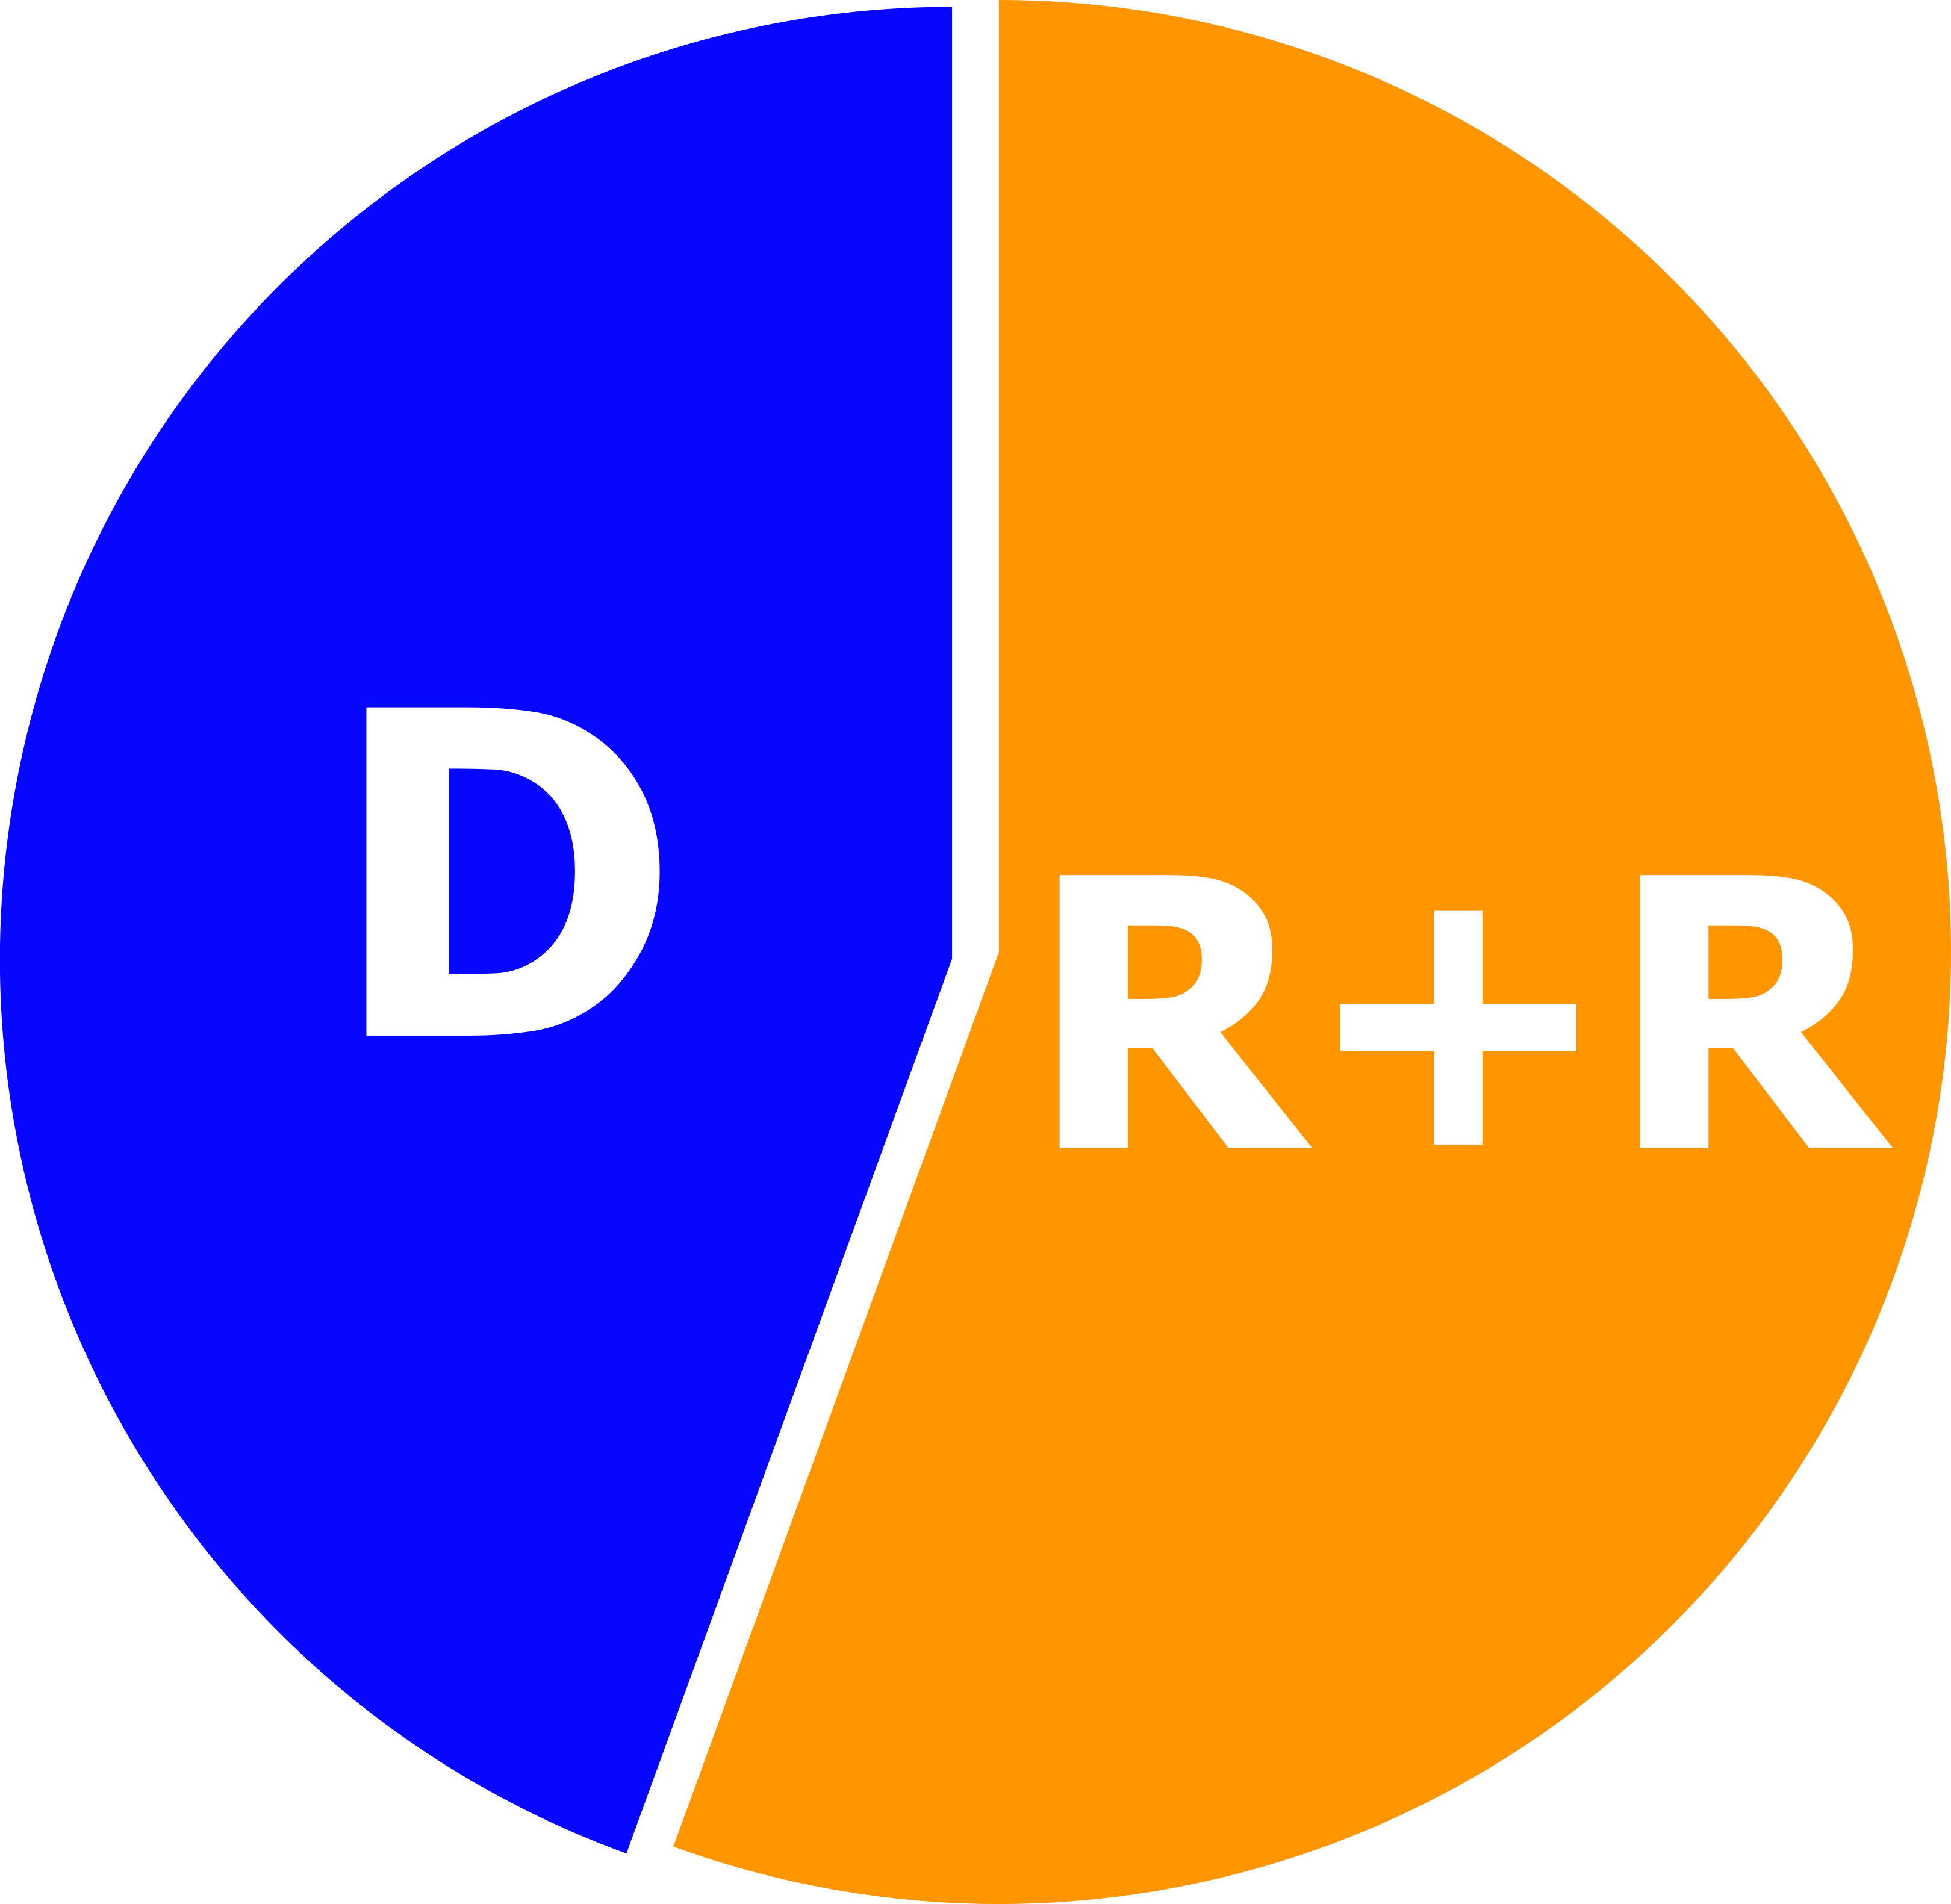 pie chart plurality results with reform party